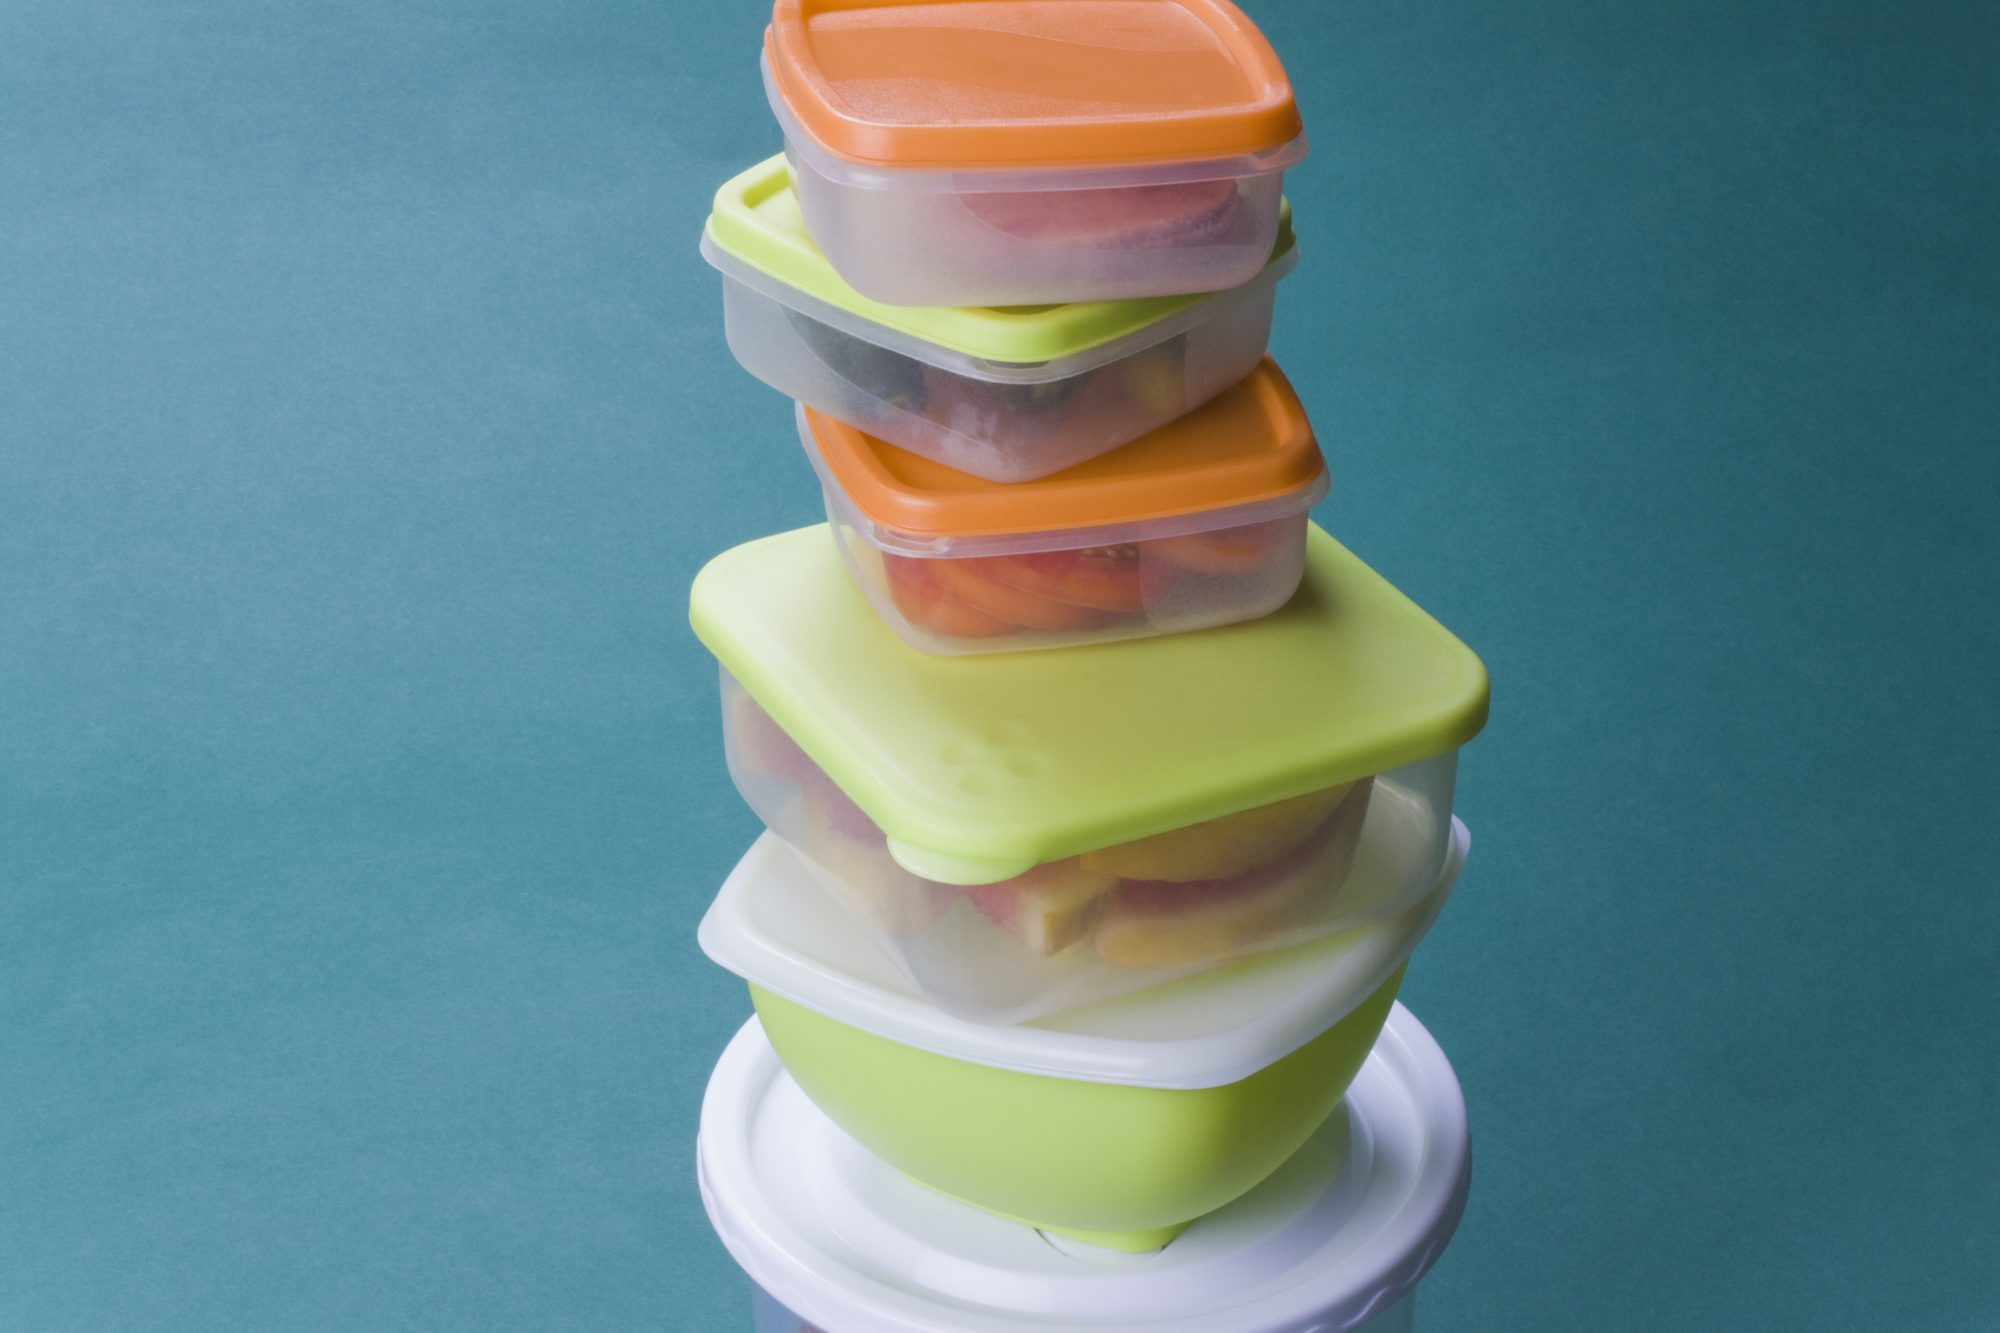 Food-storage containers